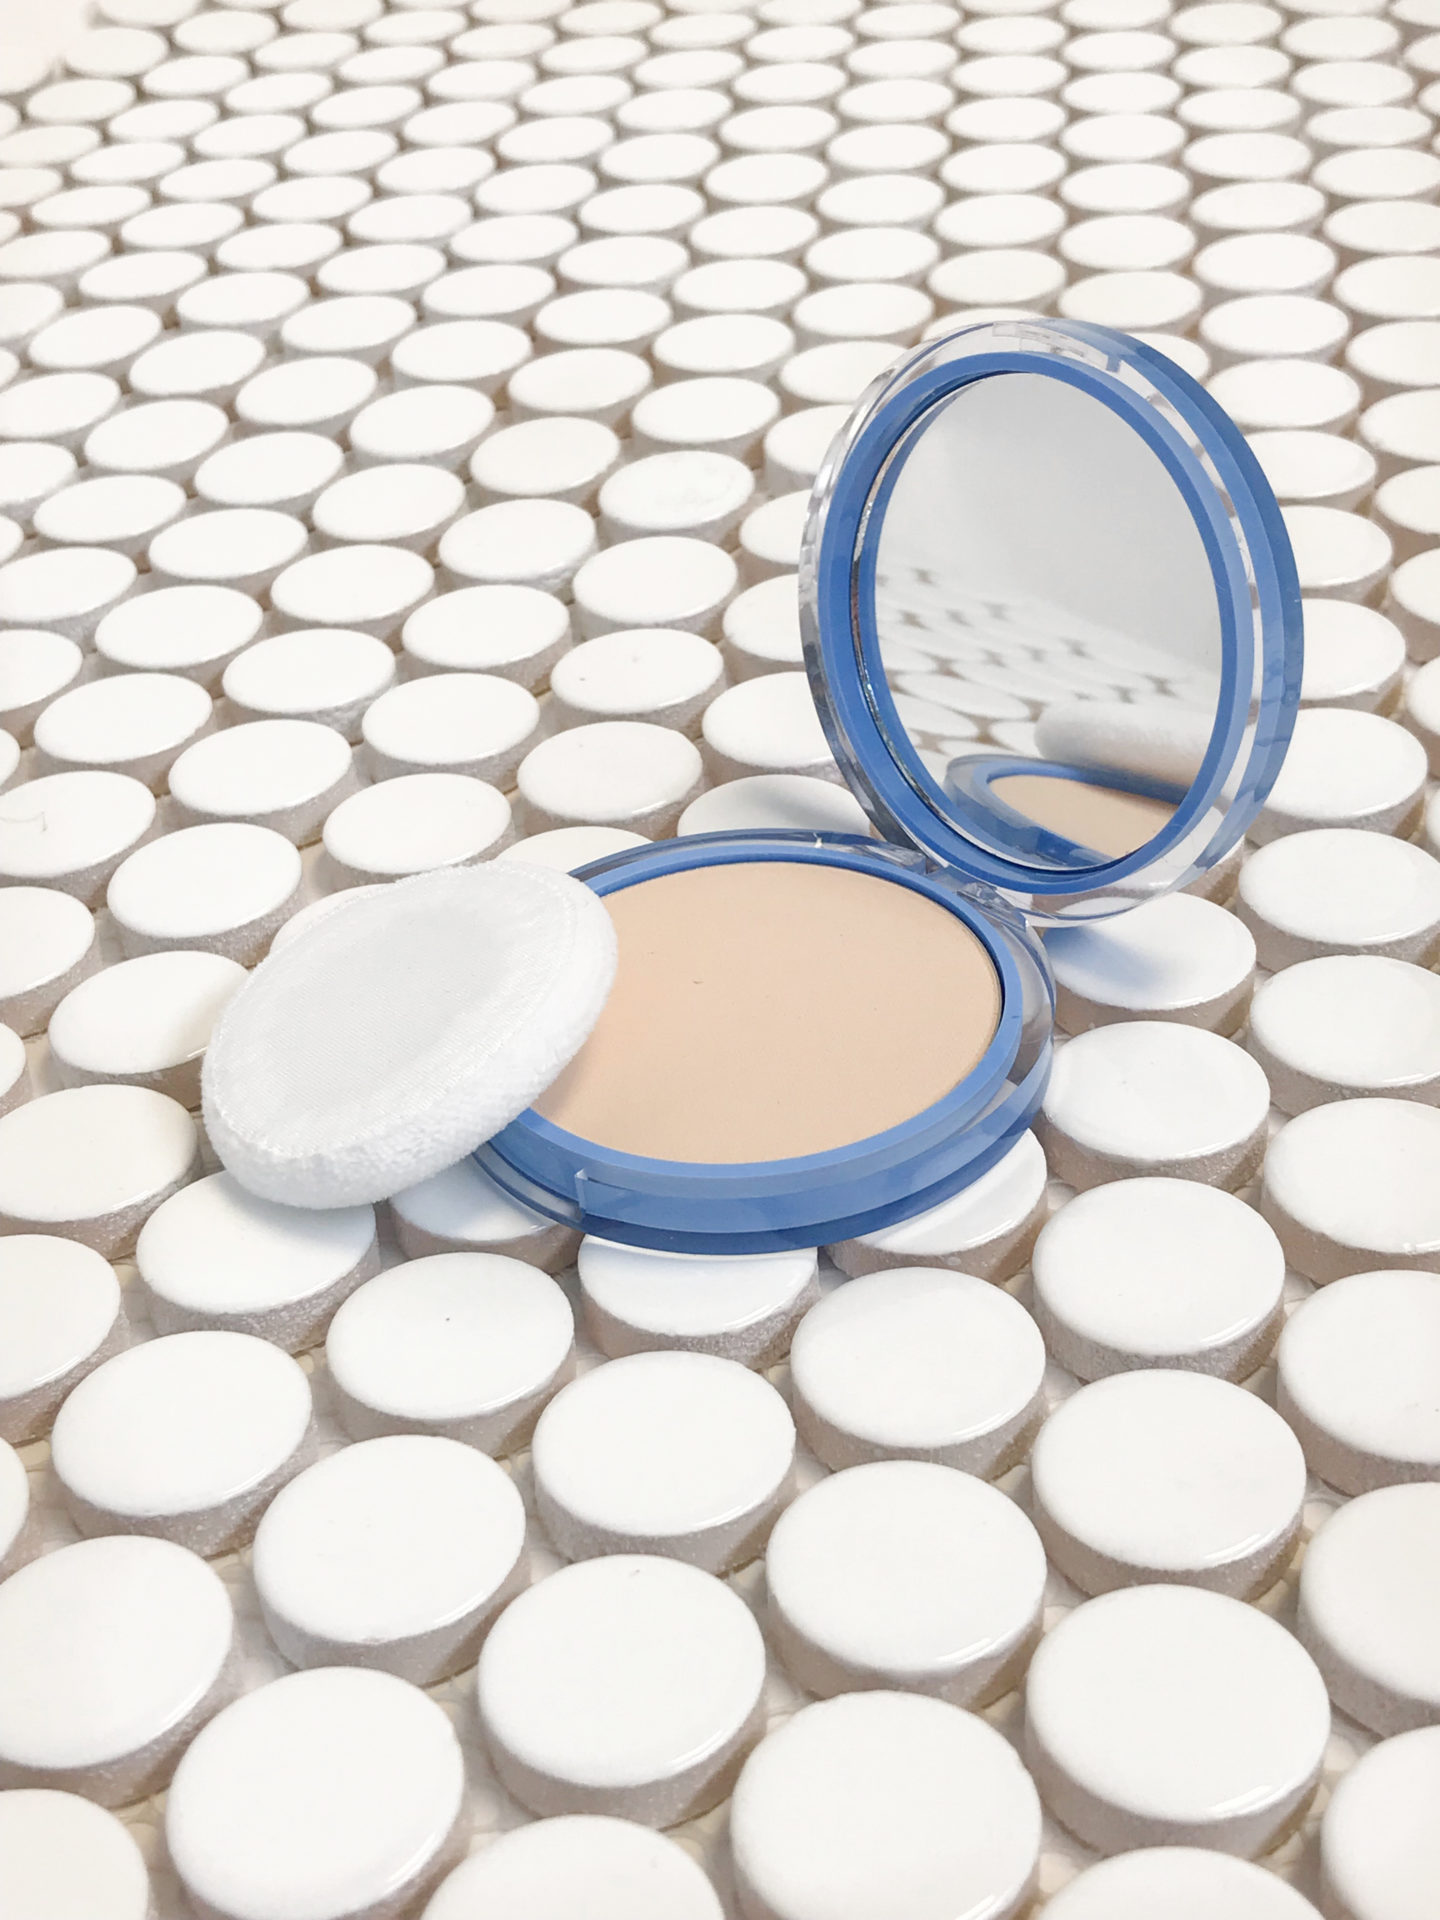 Pressed Powder Compact on White Tile